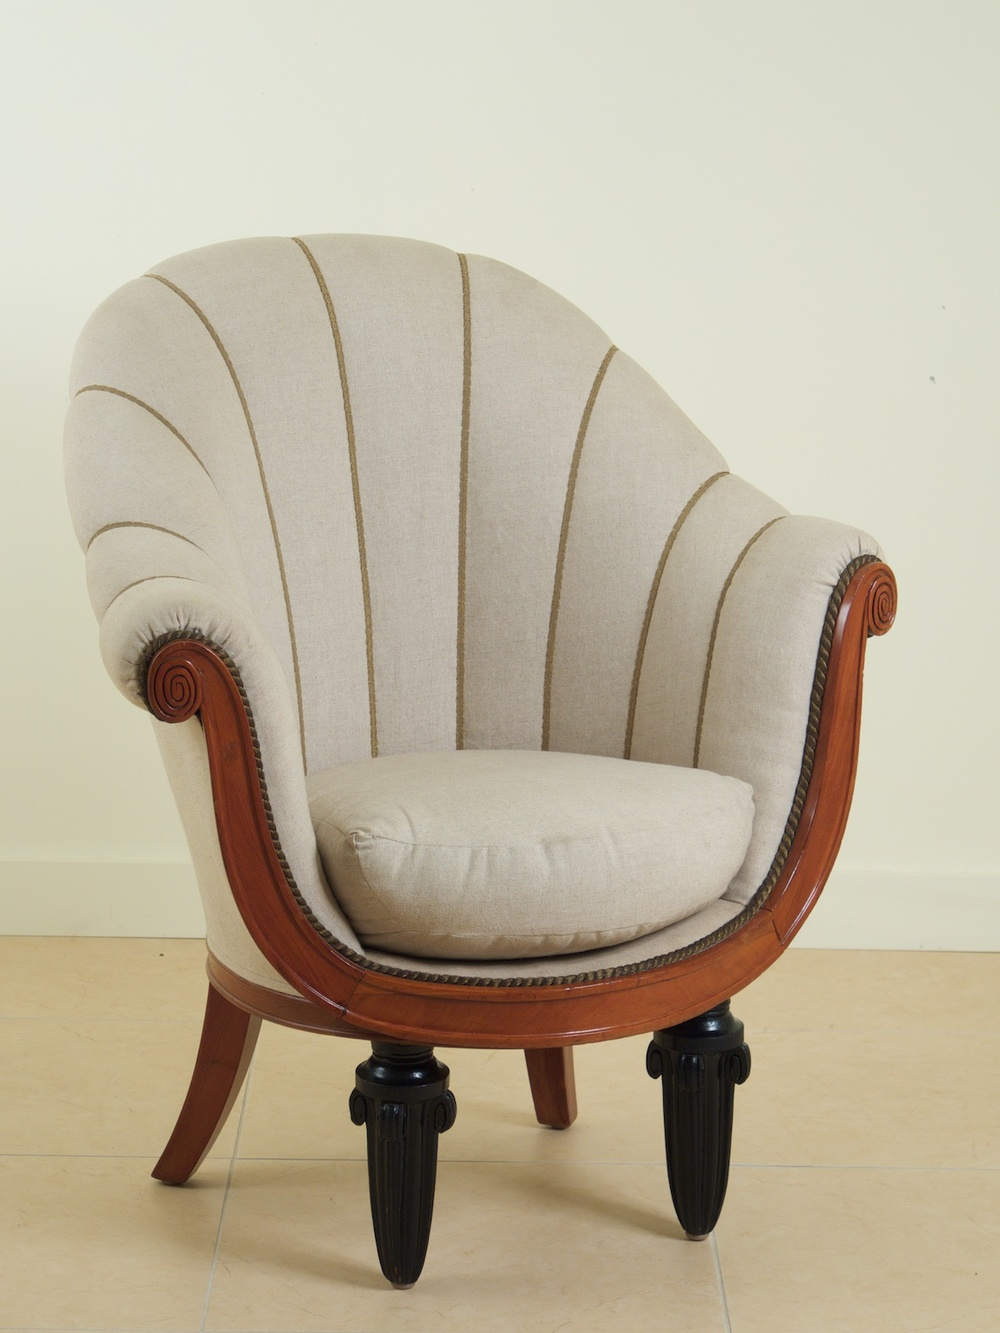 Maurice Dufrene Pair Of Early Art Deco Armchairs (#1029)